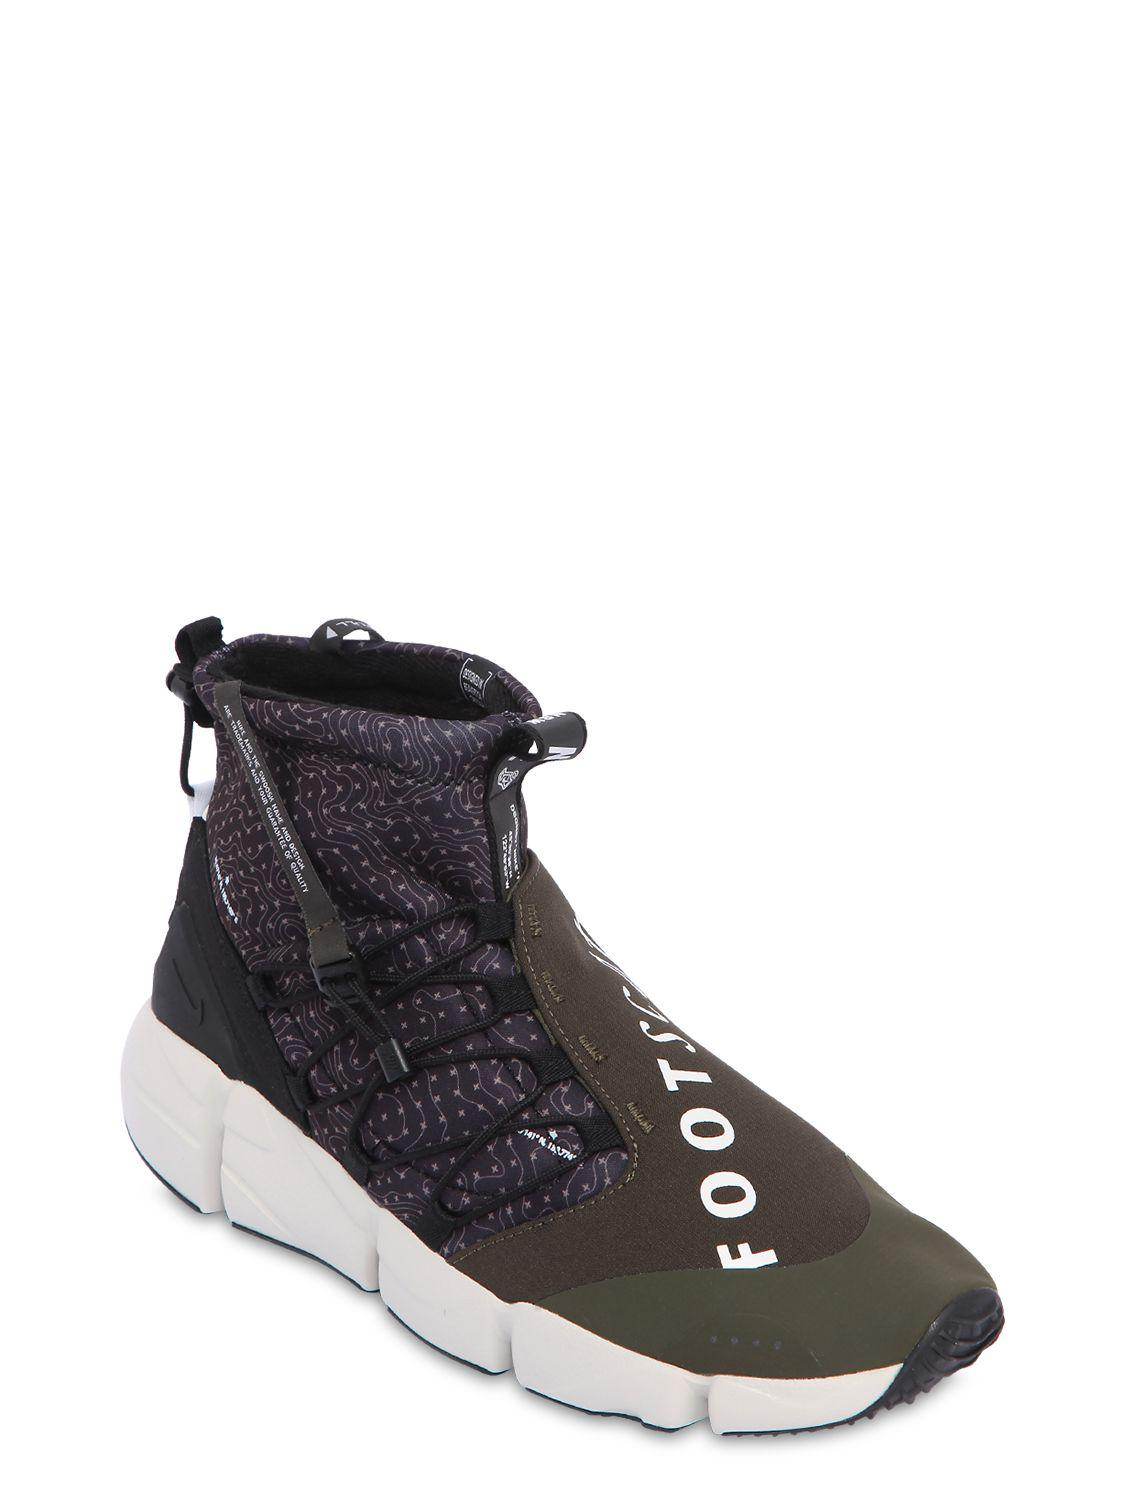 online retailer e51be 5c88b Lyst - Nike Air Footscape Utility Mid Top Sneakers in Black for Men - Save  37%